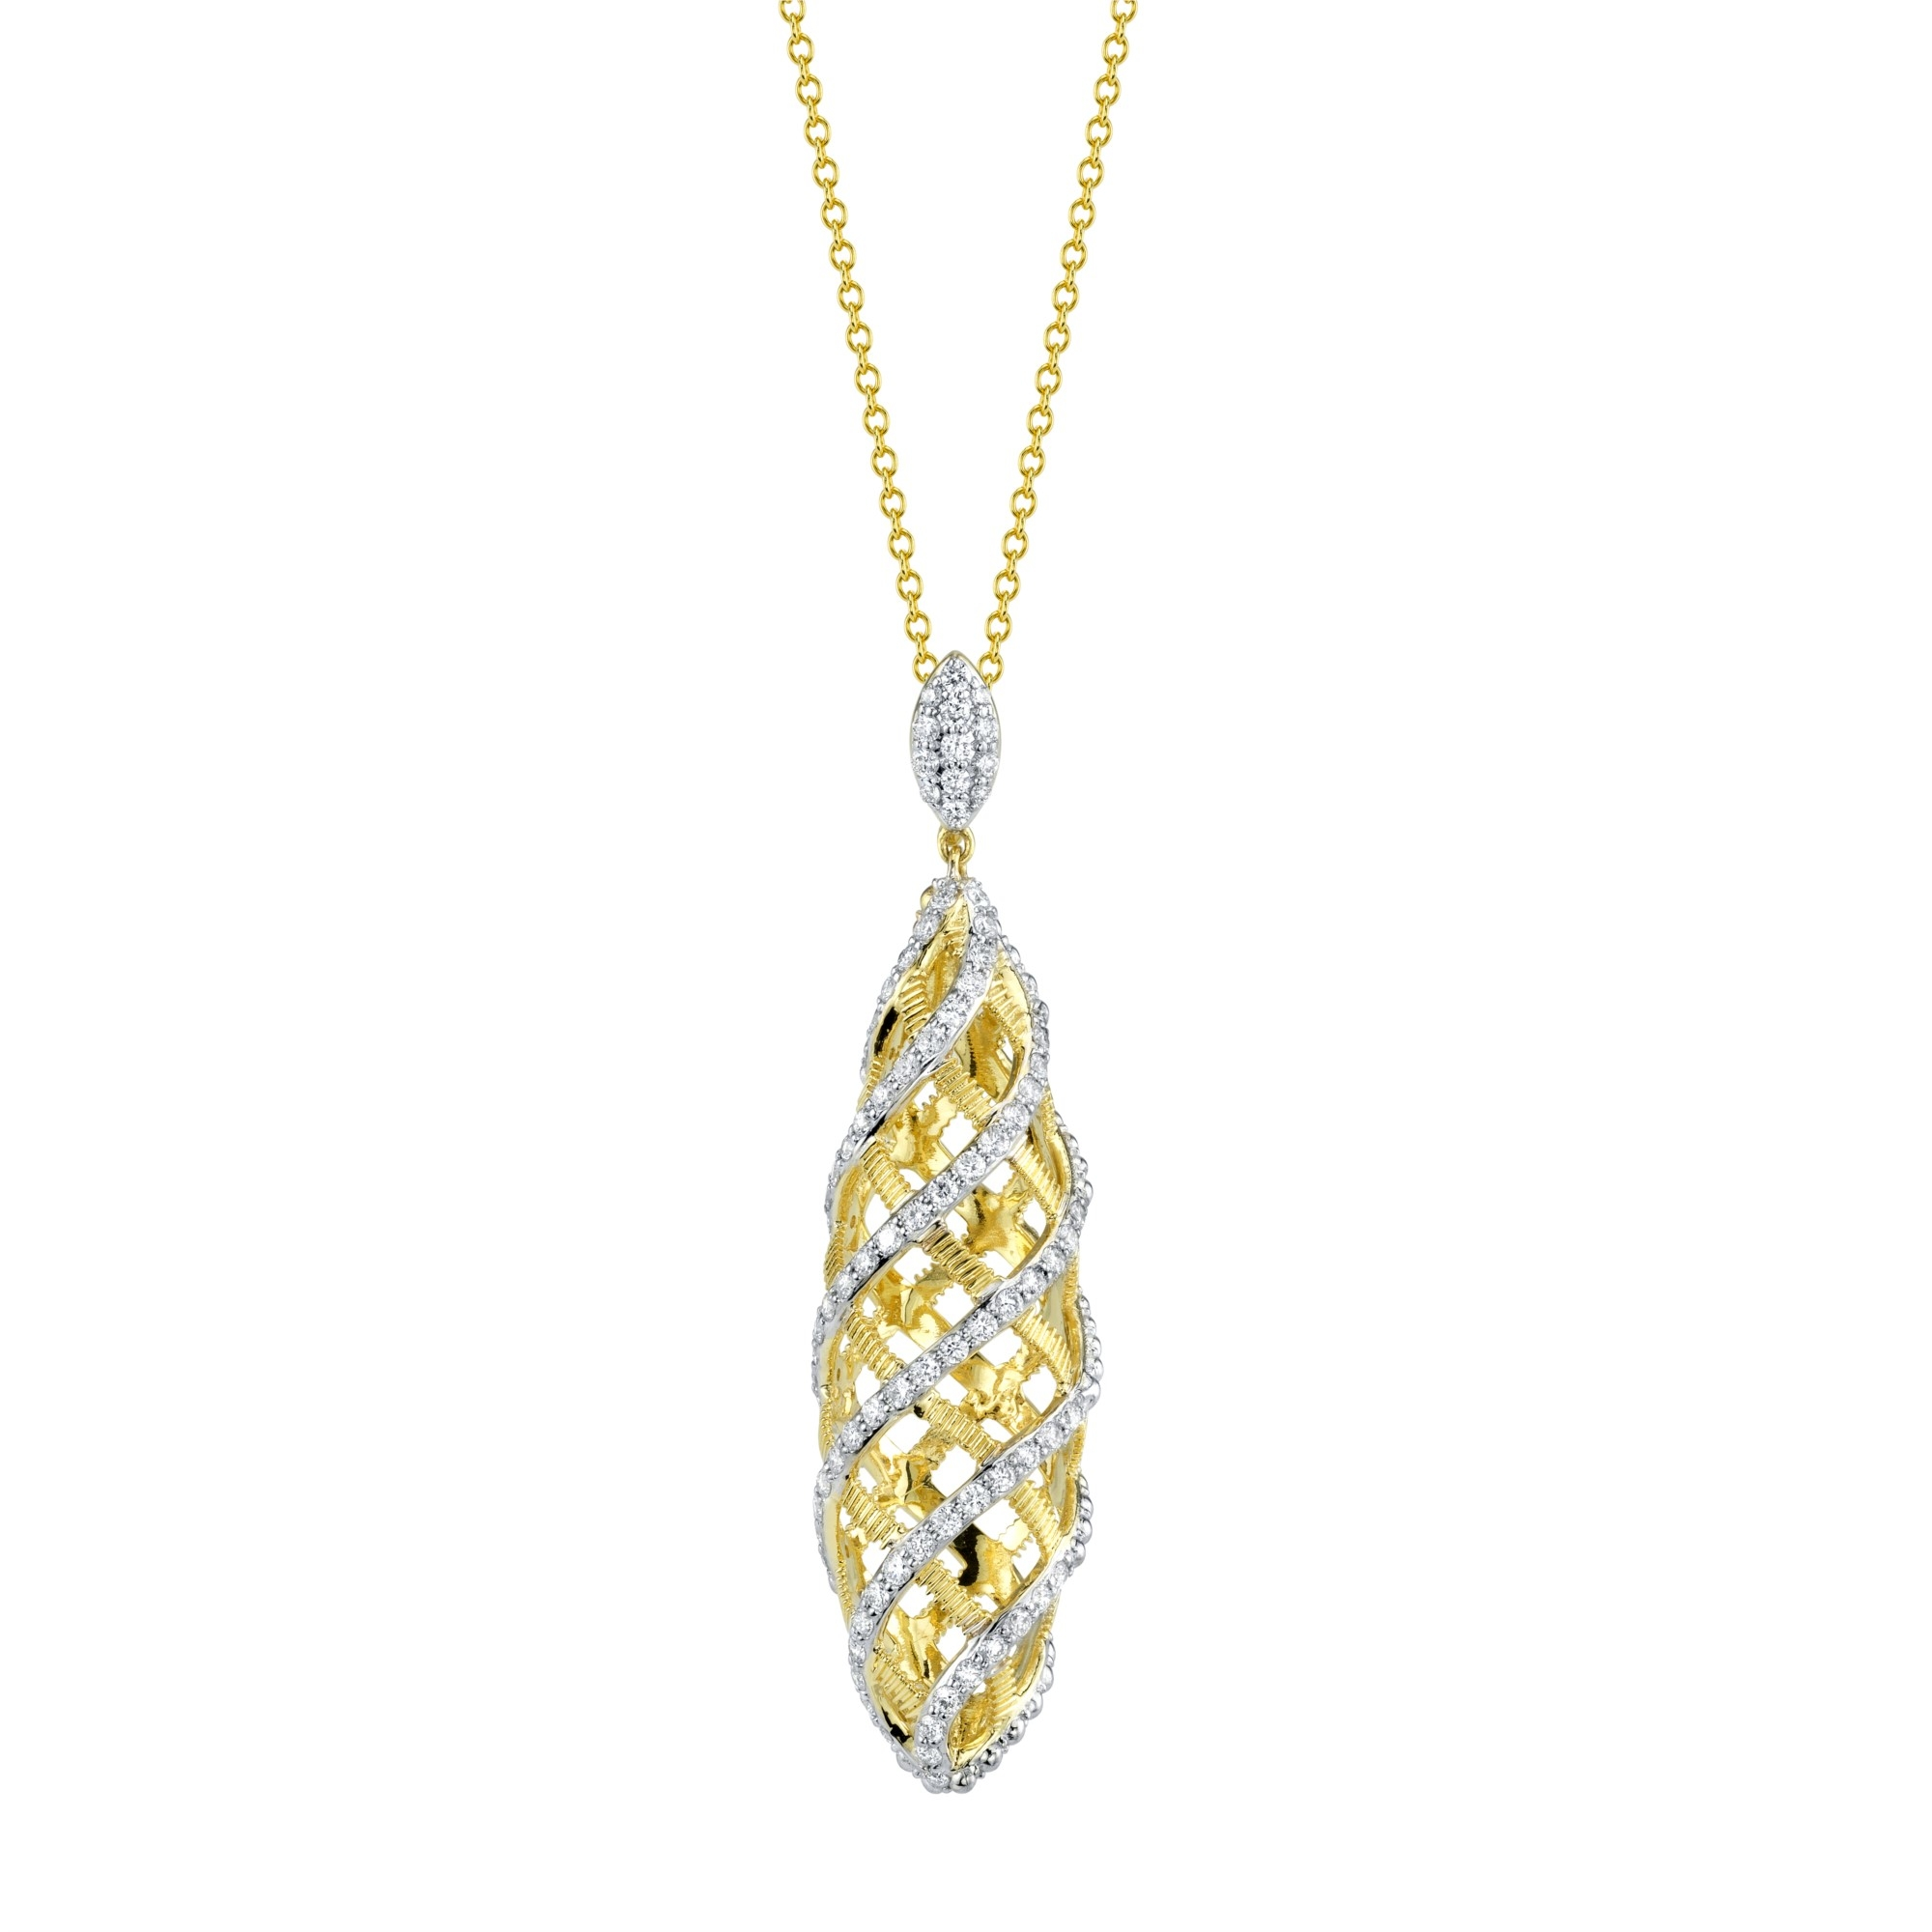 Sloane Street 18K Yellow Gold .85cts  Diamonds Gold Pendants / Charms P003F-WDCB-Y